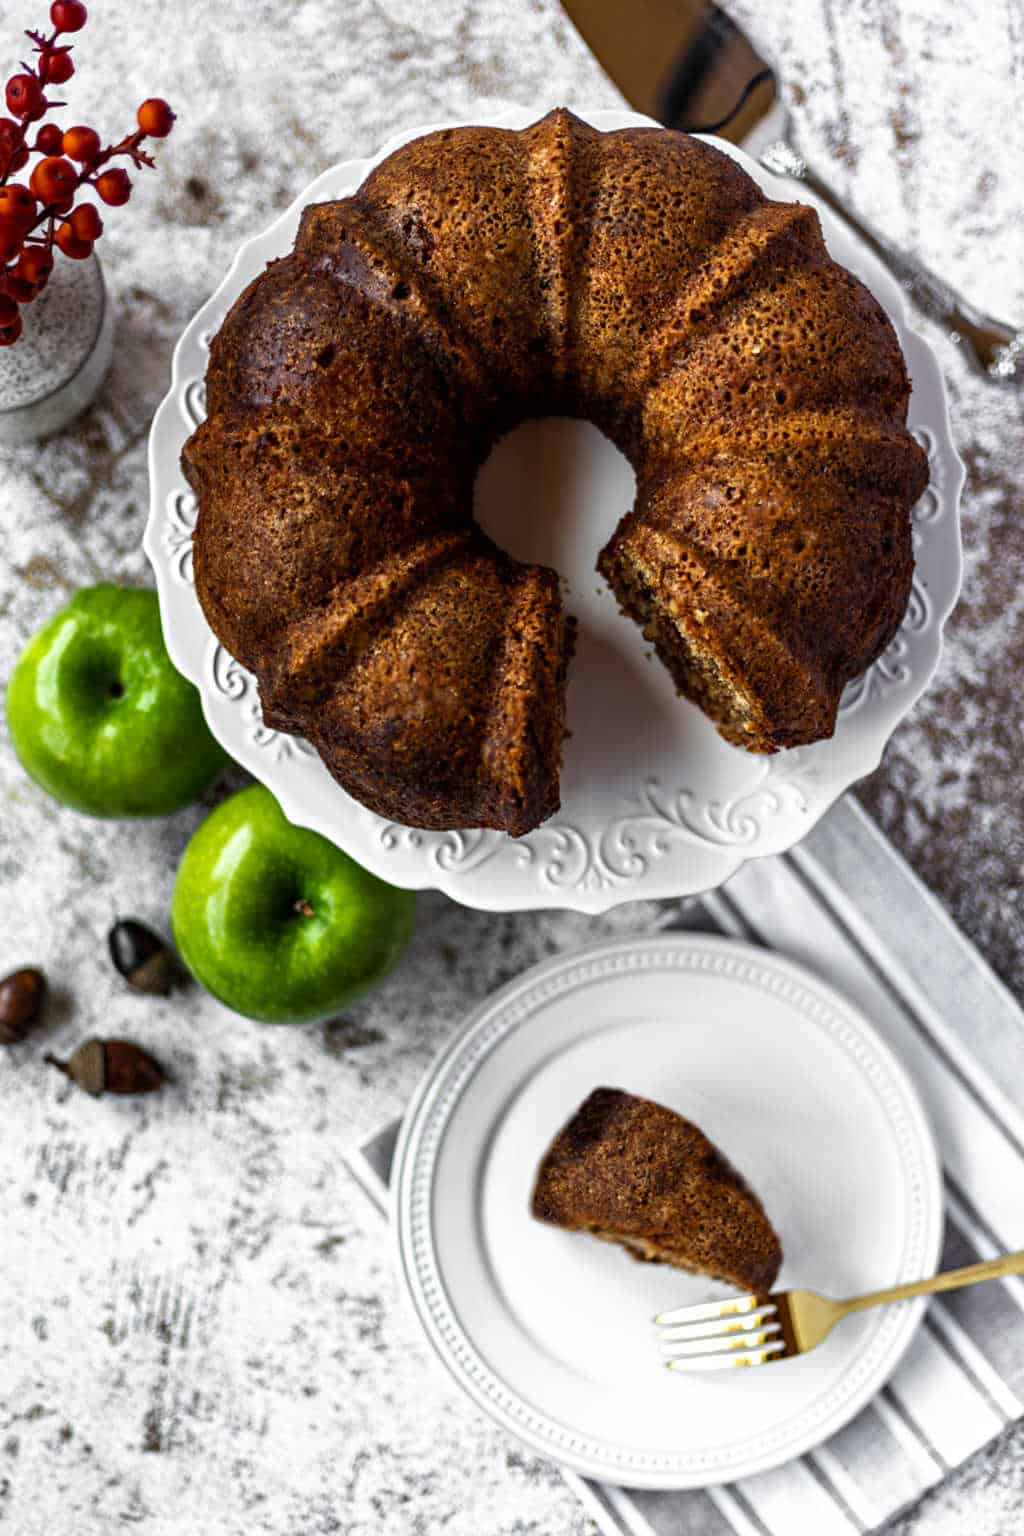 apple walnut bundt cake on a cake stand